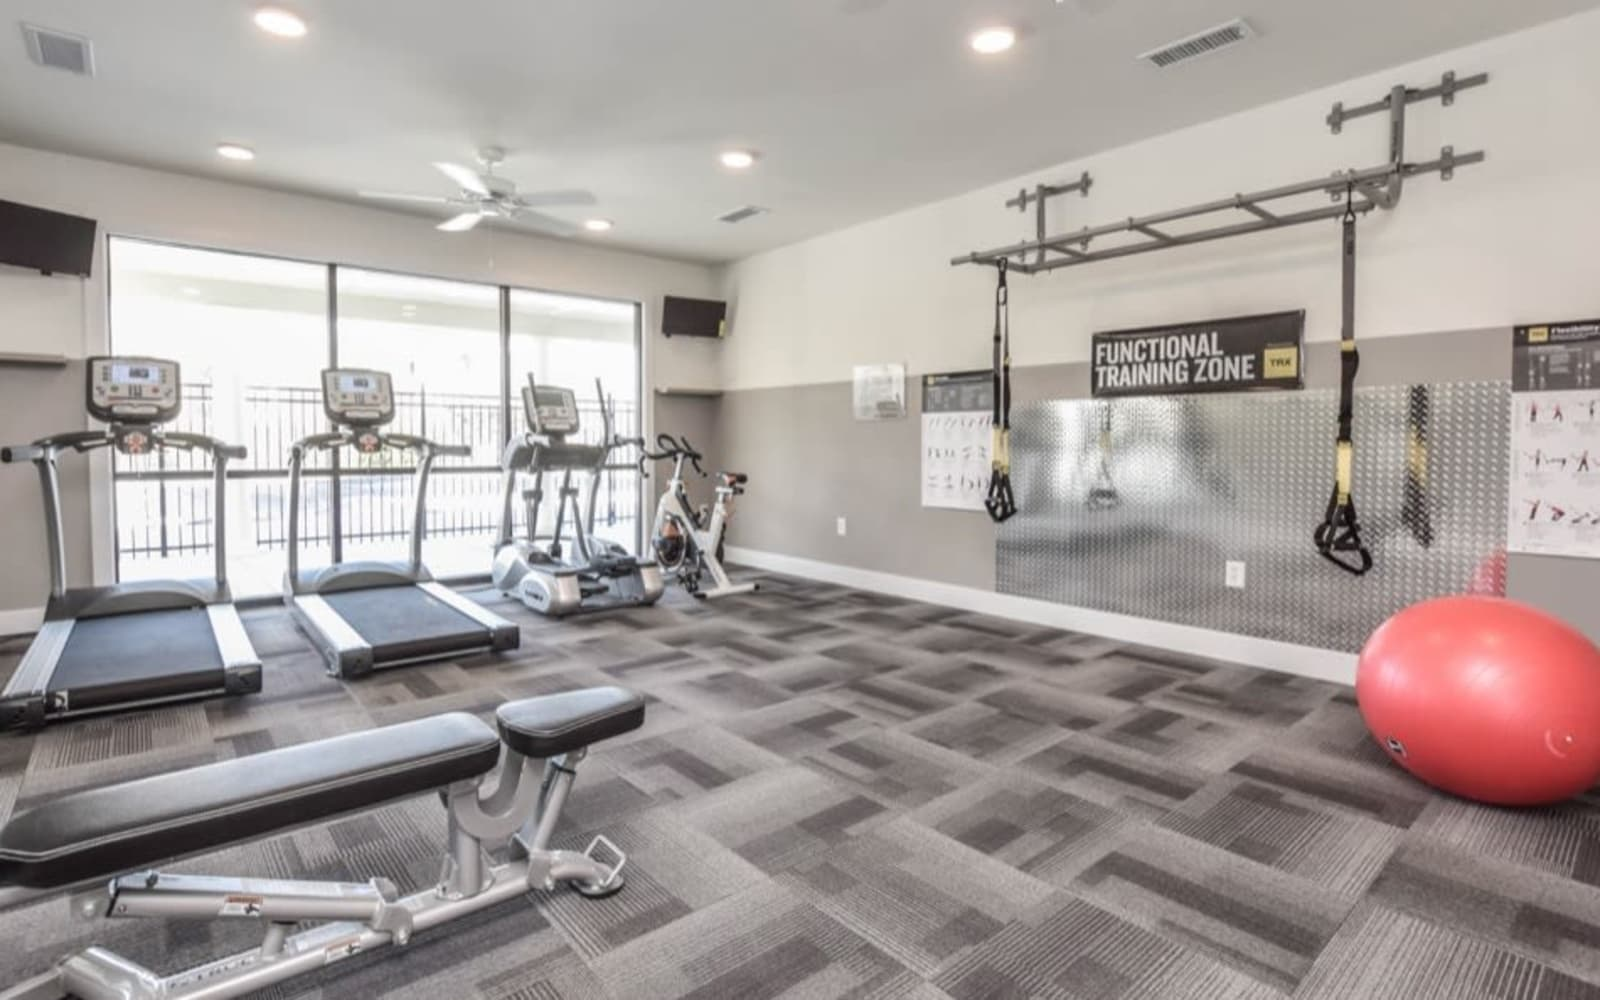 Fitness center with cardio machines at Aventura at Towne Centre in Ellisville, Missouri.